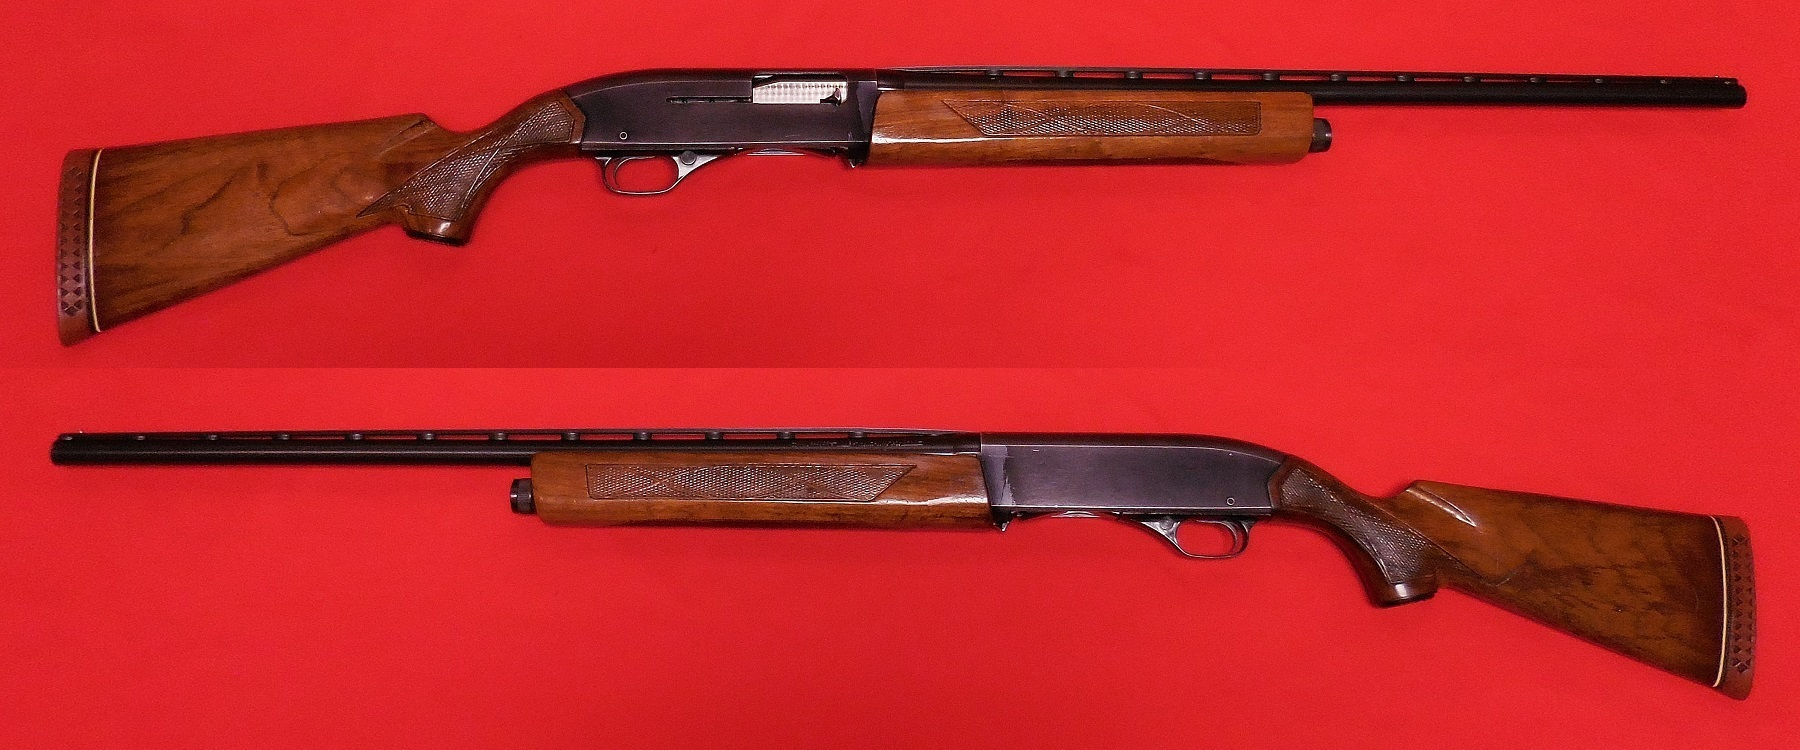 Winchester Post-64 Shotguns